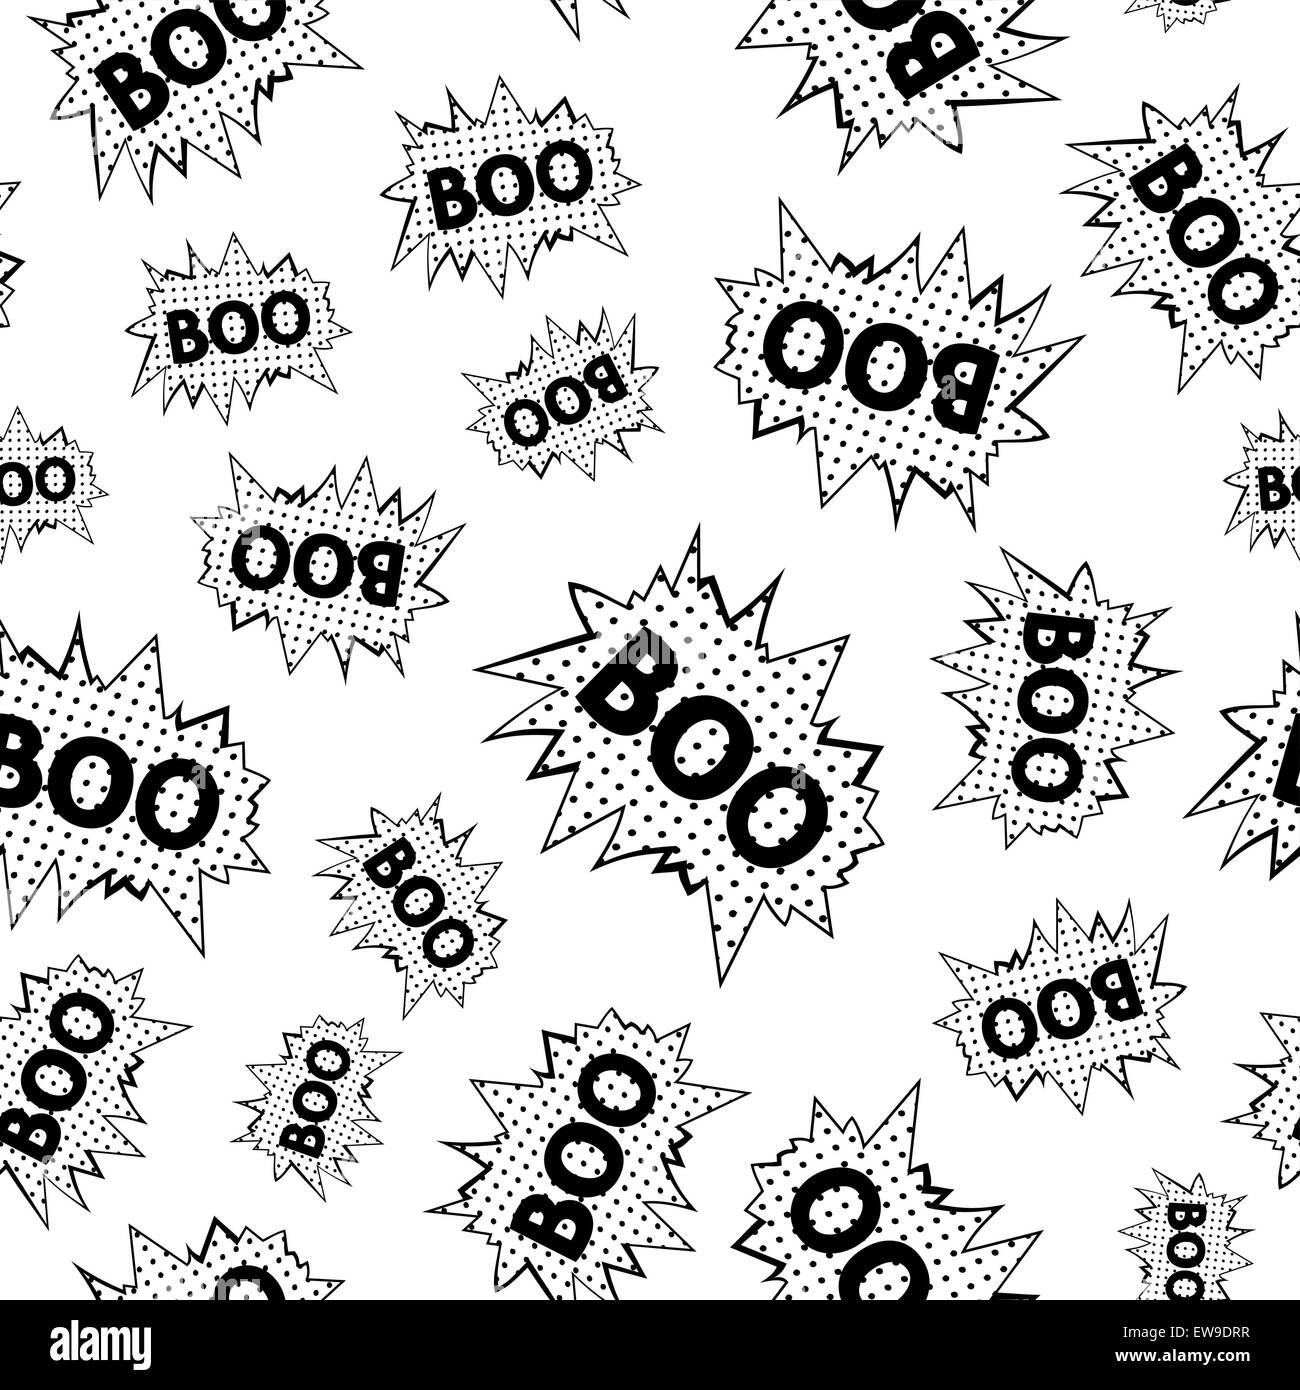 background pattern bubble vectors stock photos background pattern Banner Rainbow Background just seamless pattern of ic speech bubbles with word boo vector eps 8